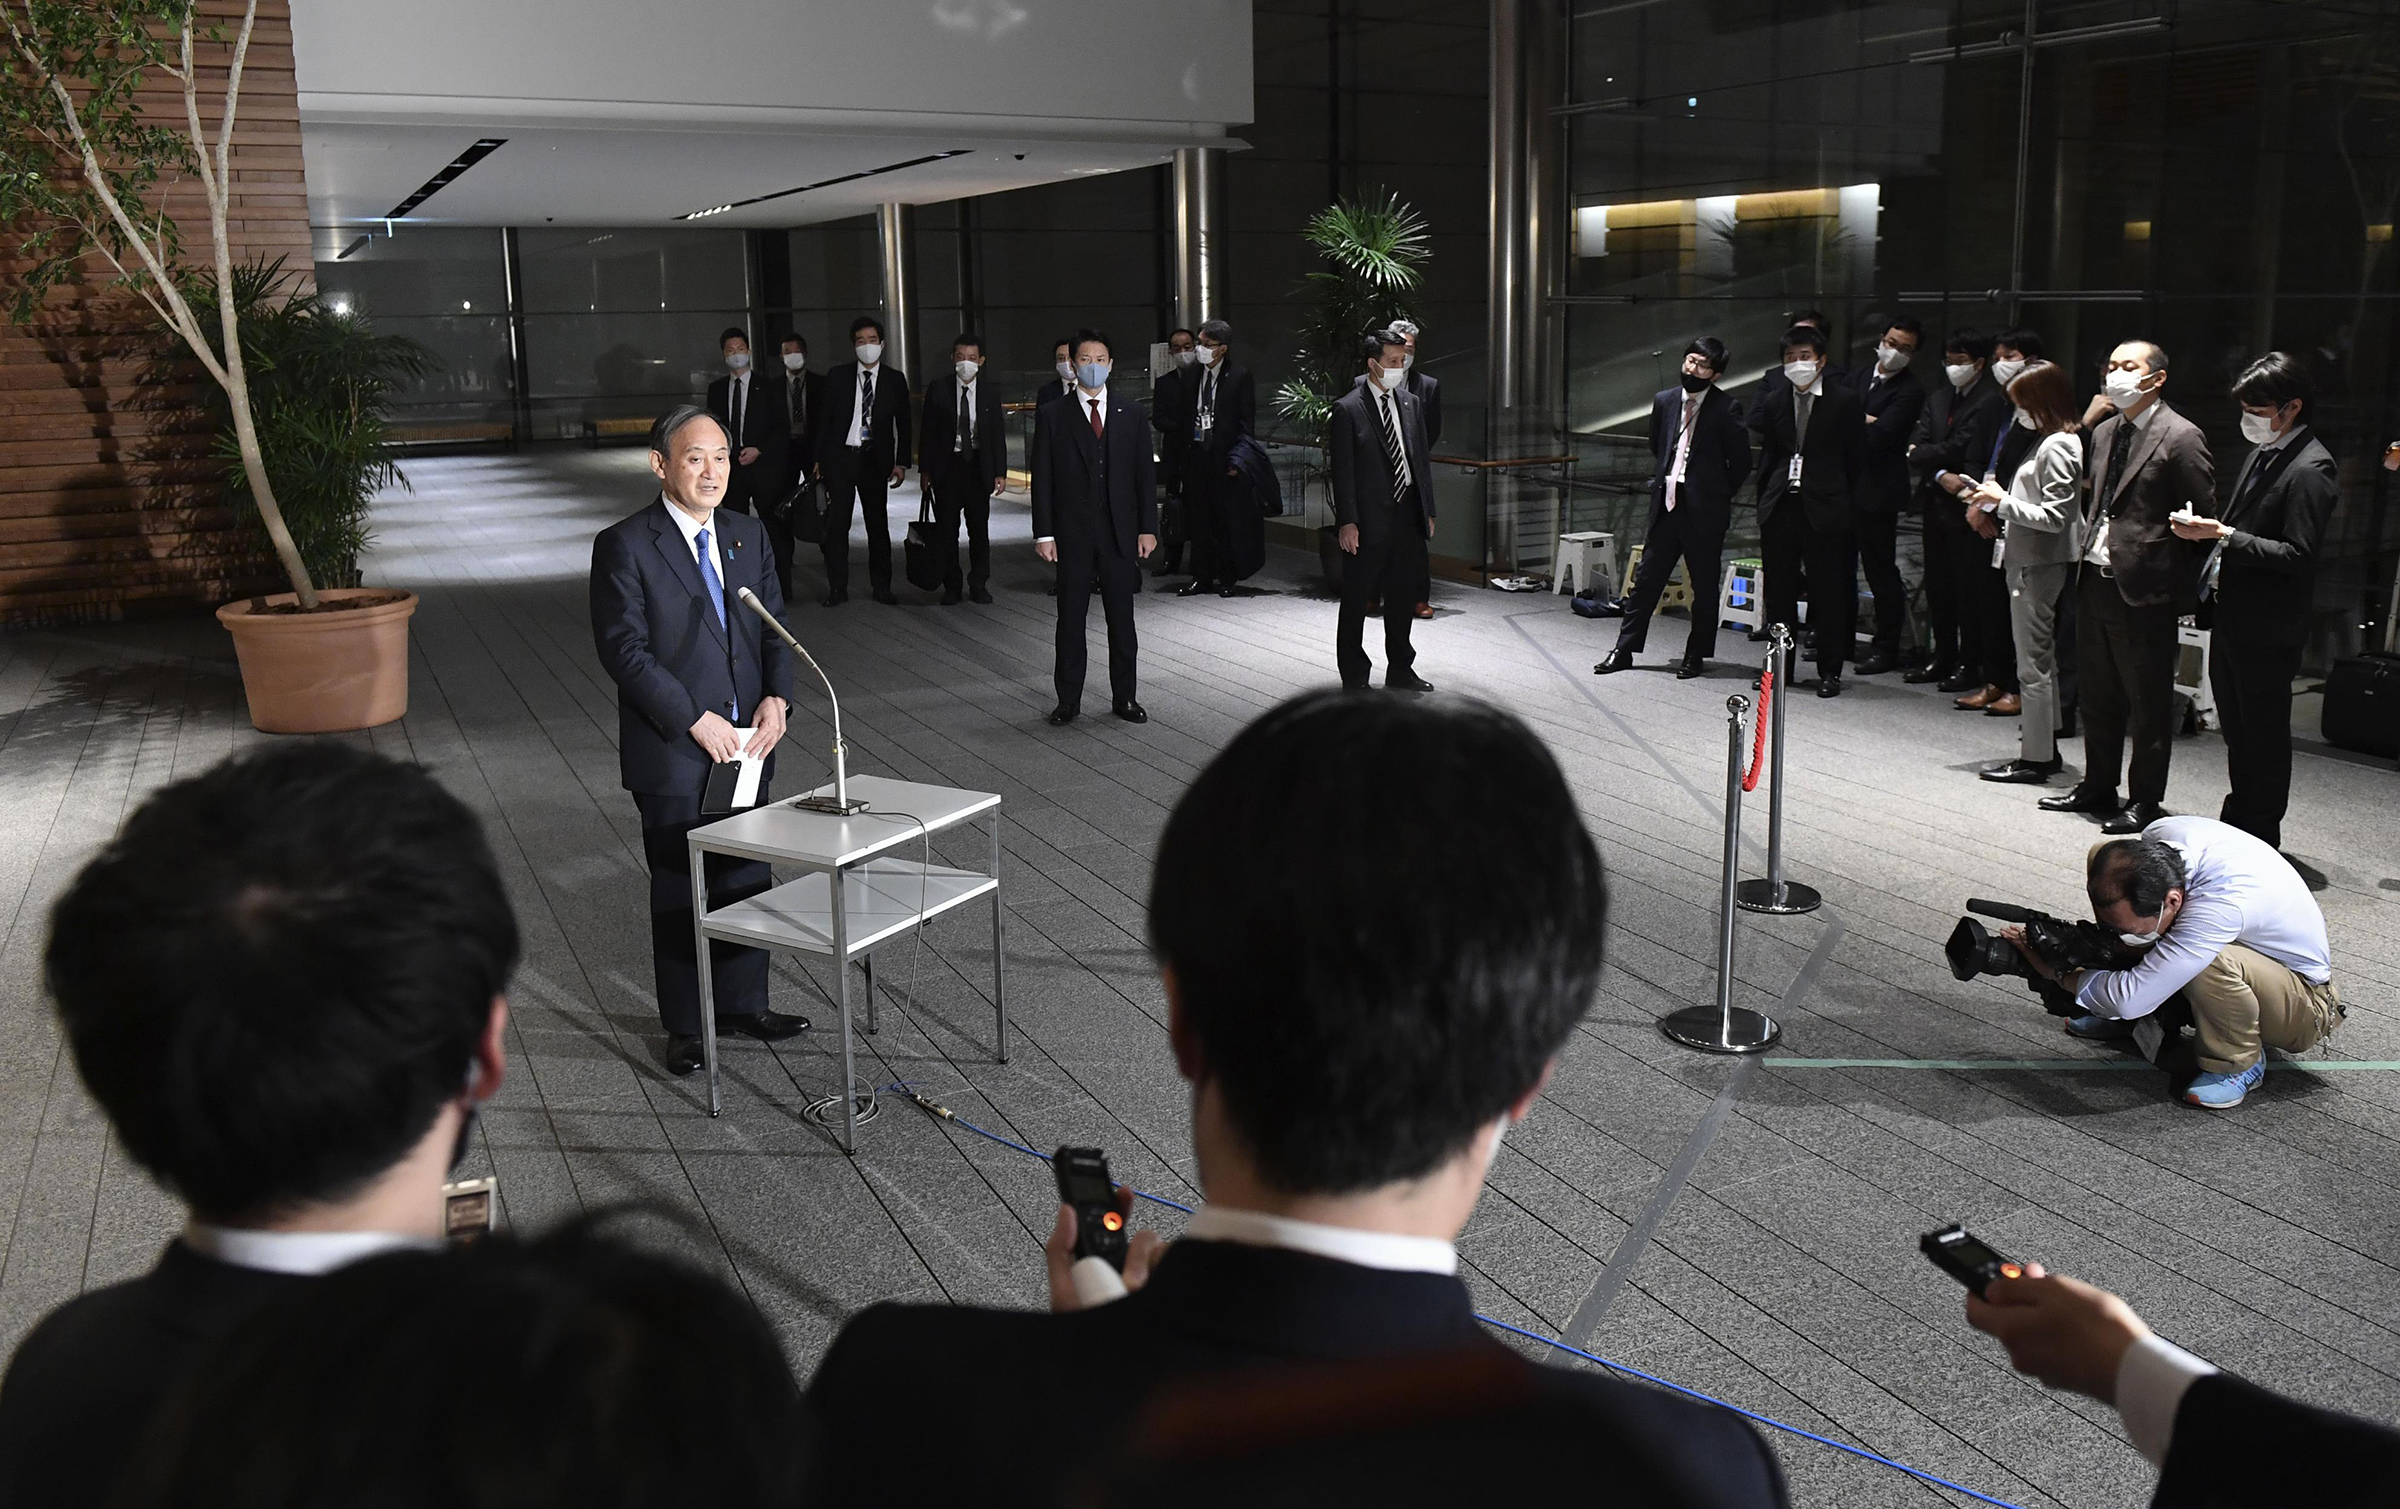 Japanese Prime Minister Yoshihide Suga speaks to reporters at his office in Tokyo on Dec. 14. The government's Go To Travel campaign will be halted from Dec. 28 to Jan. 11 amid a surge in coronavirus cases